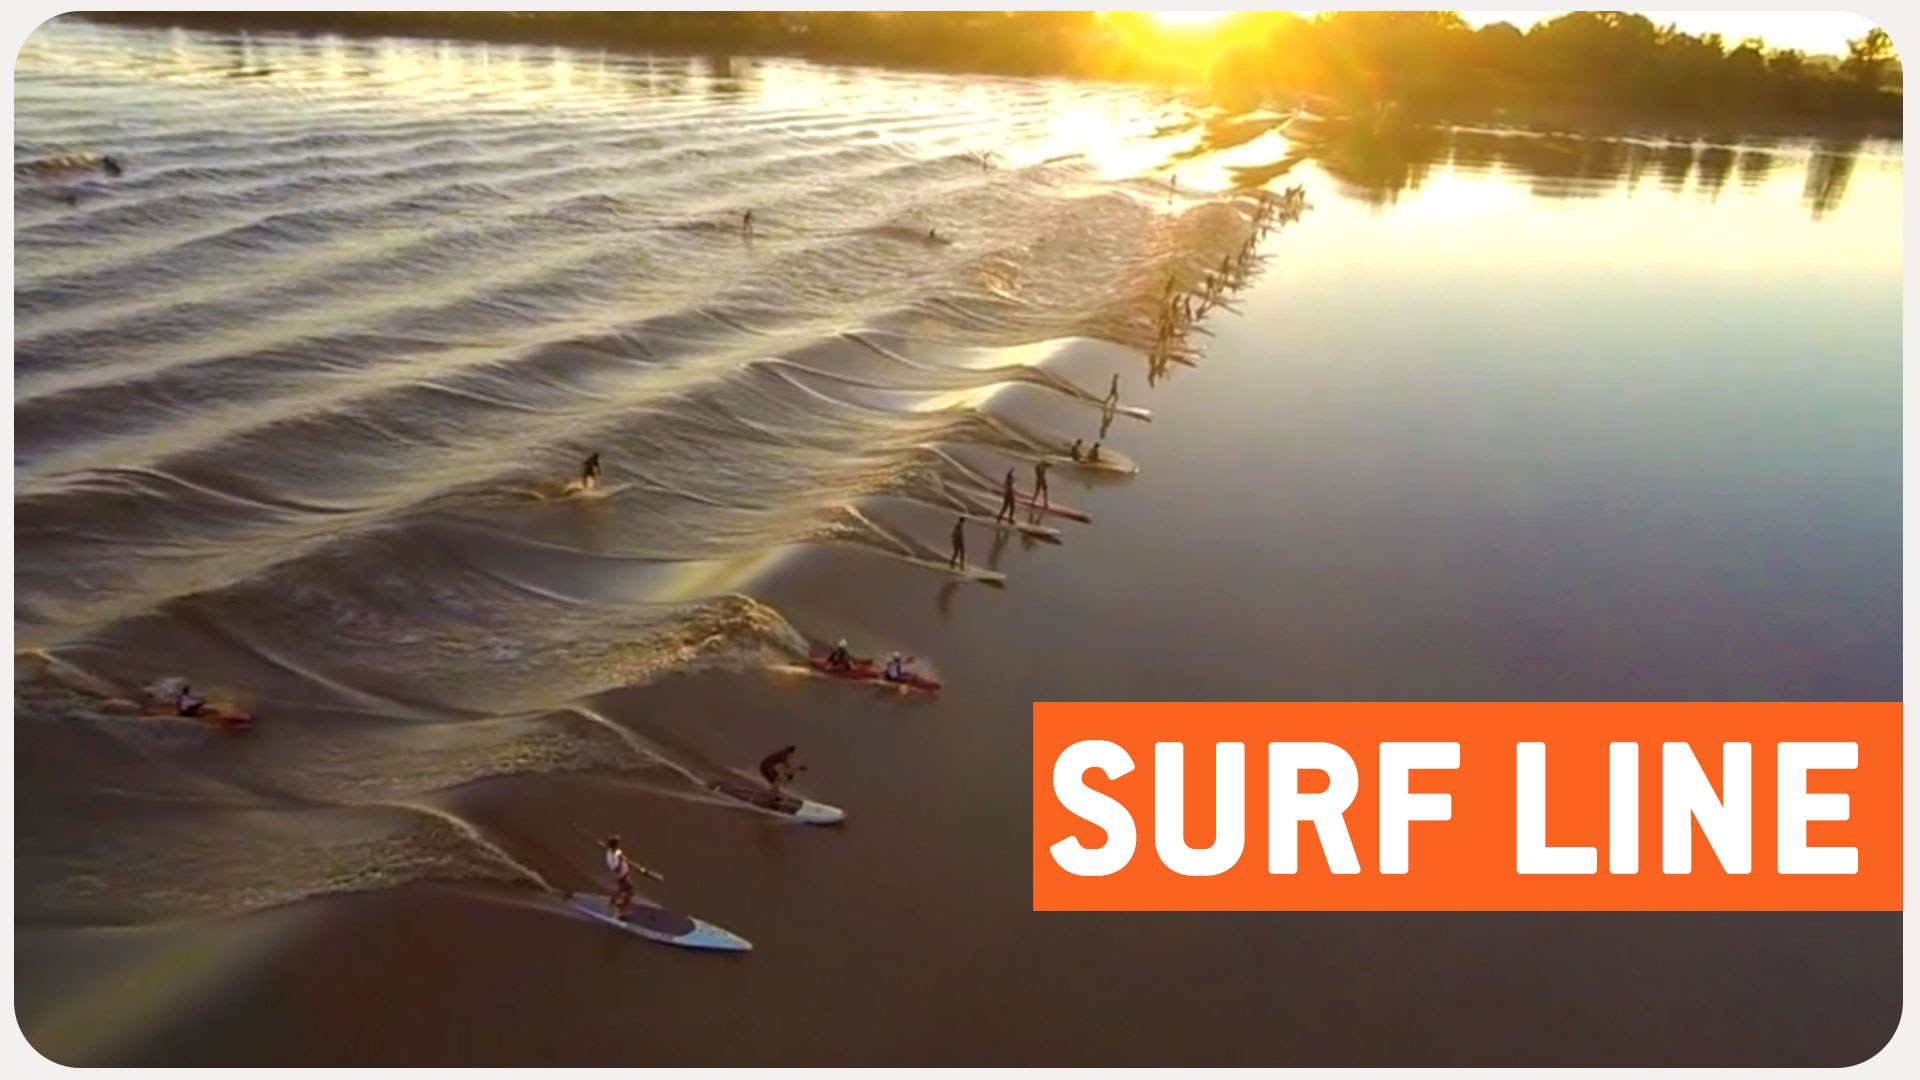 Amazing surfers on a tidal wave aftermath